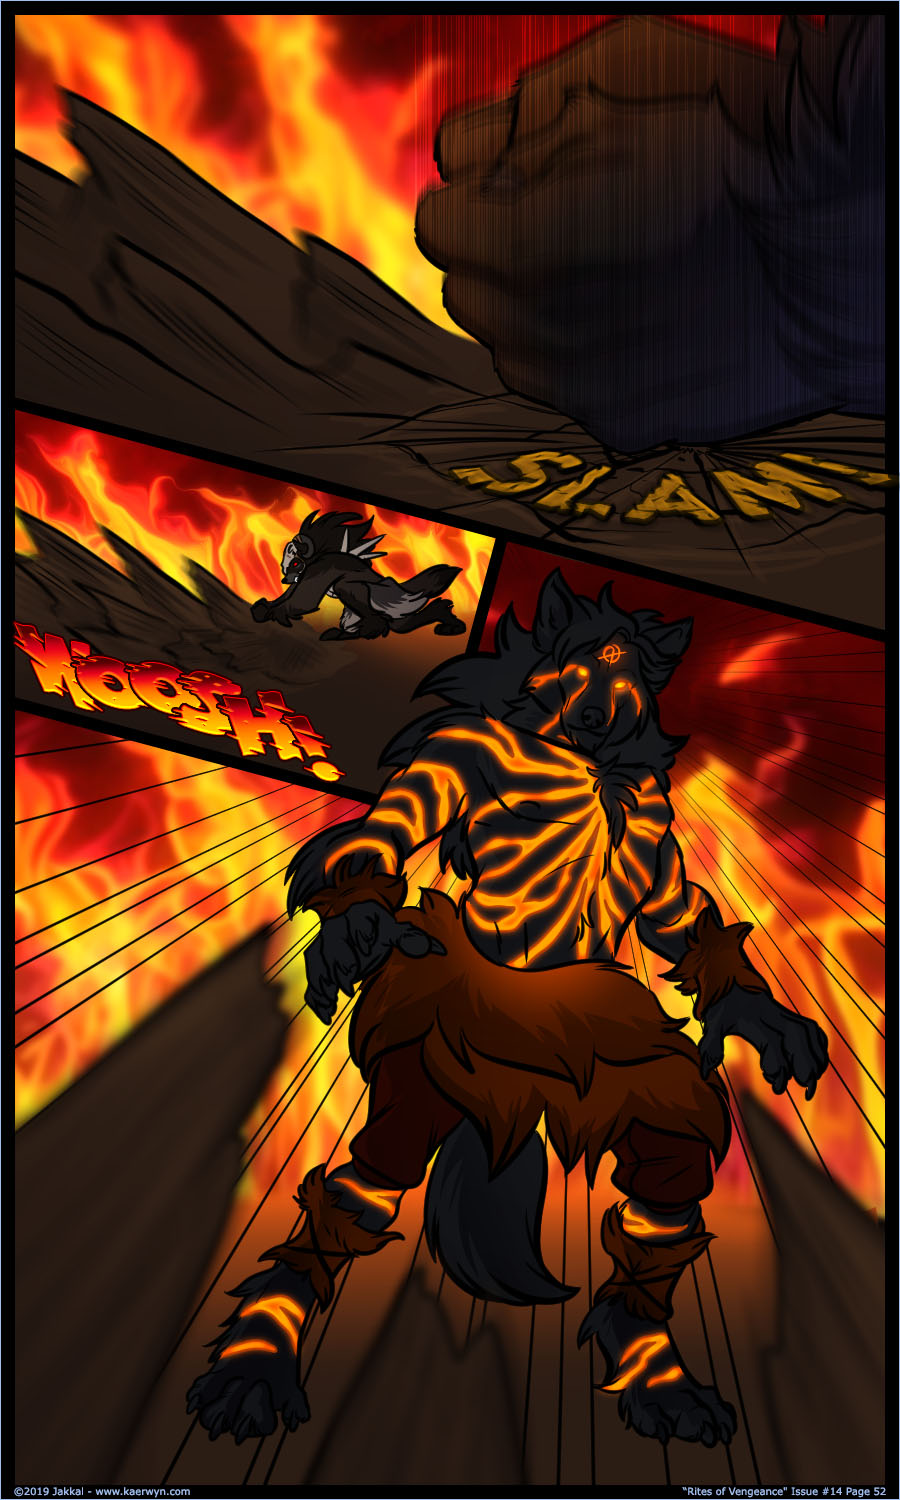 Issue 14 Page 52